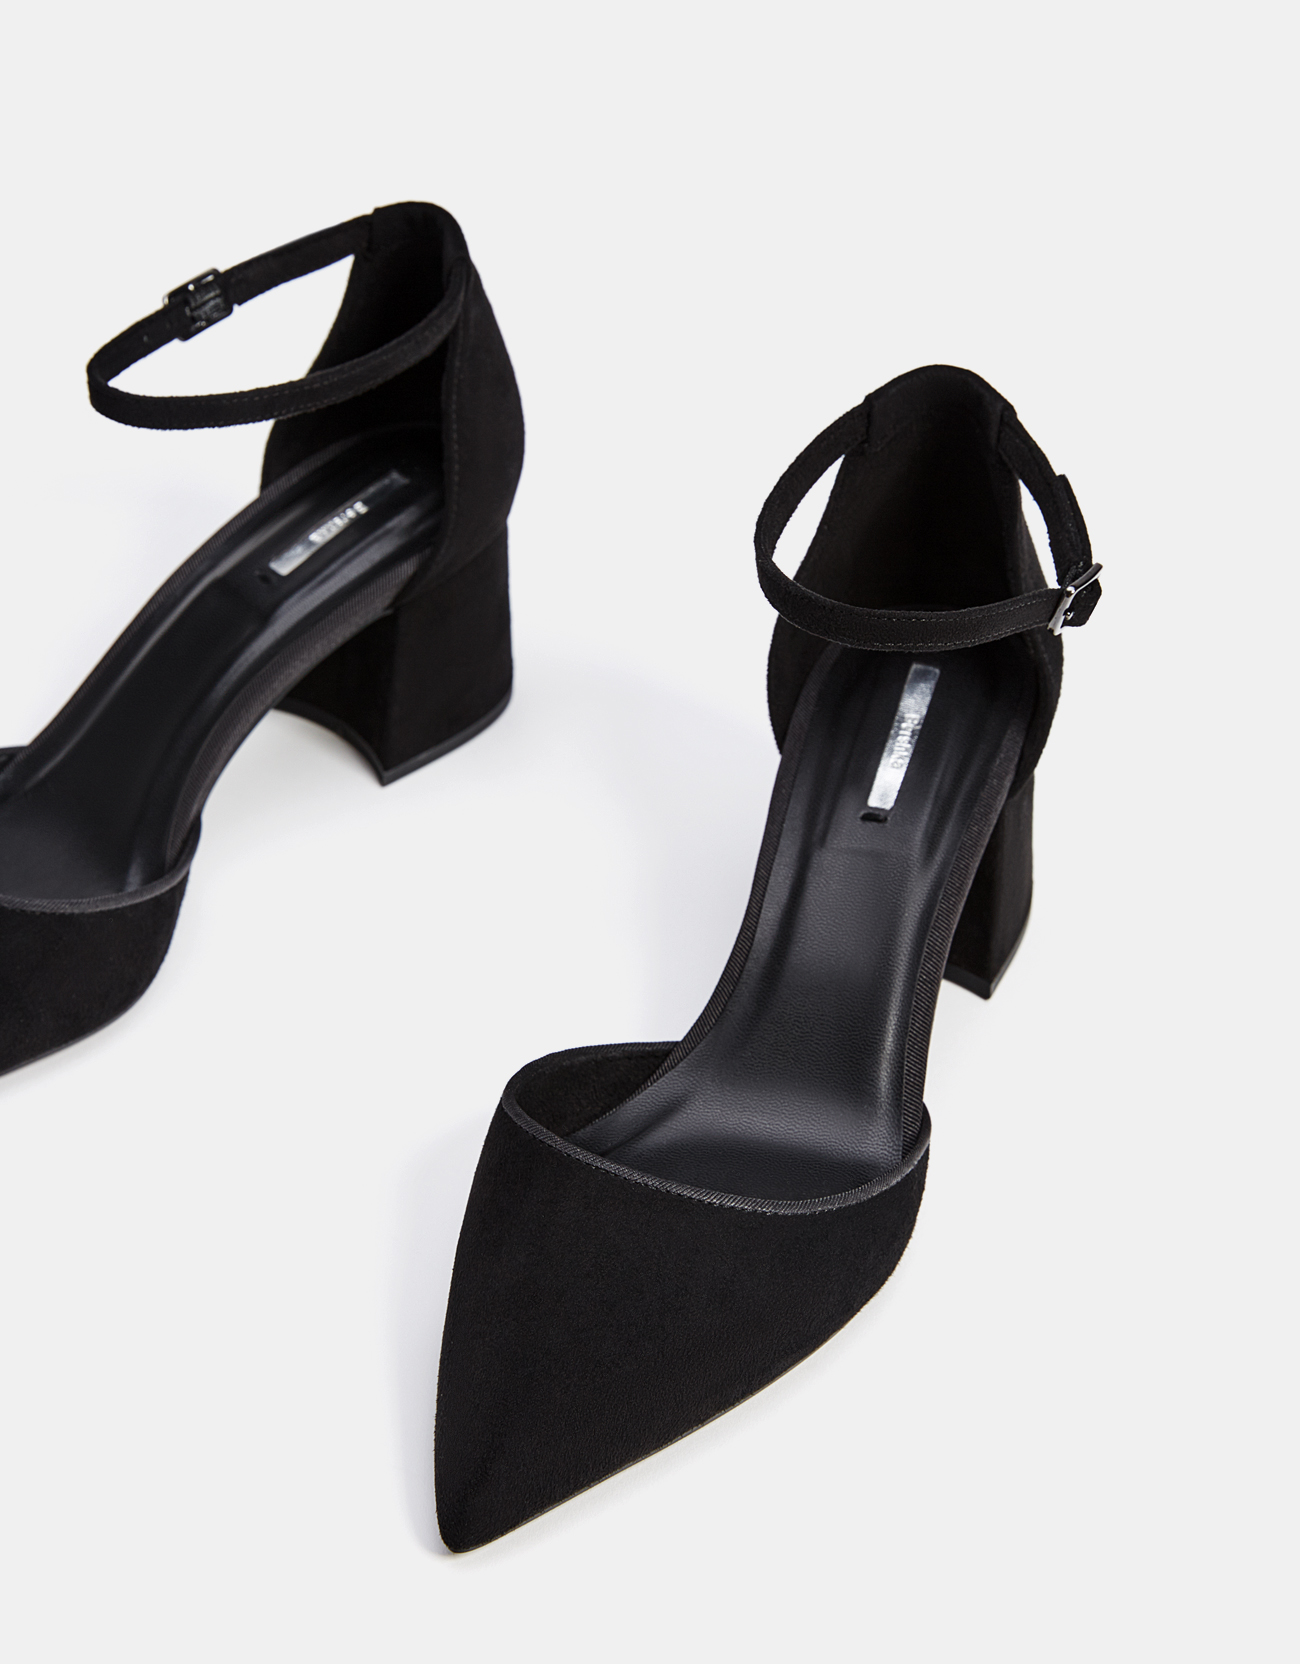 Mid-heel shoes with ankle straps - SHOES - Bershka Azerbaijan